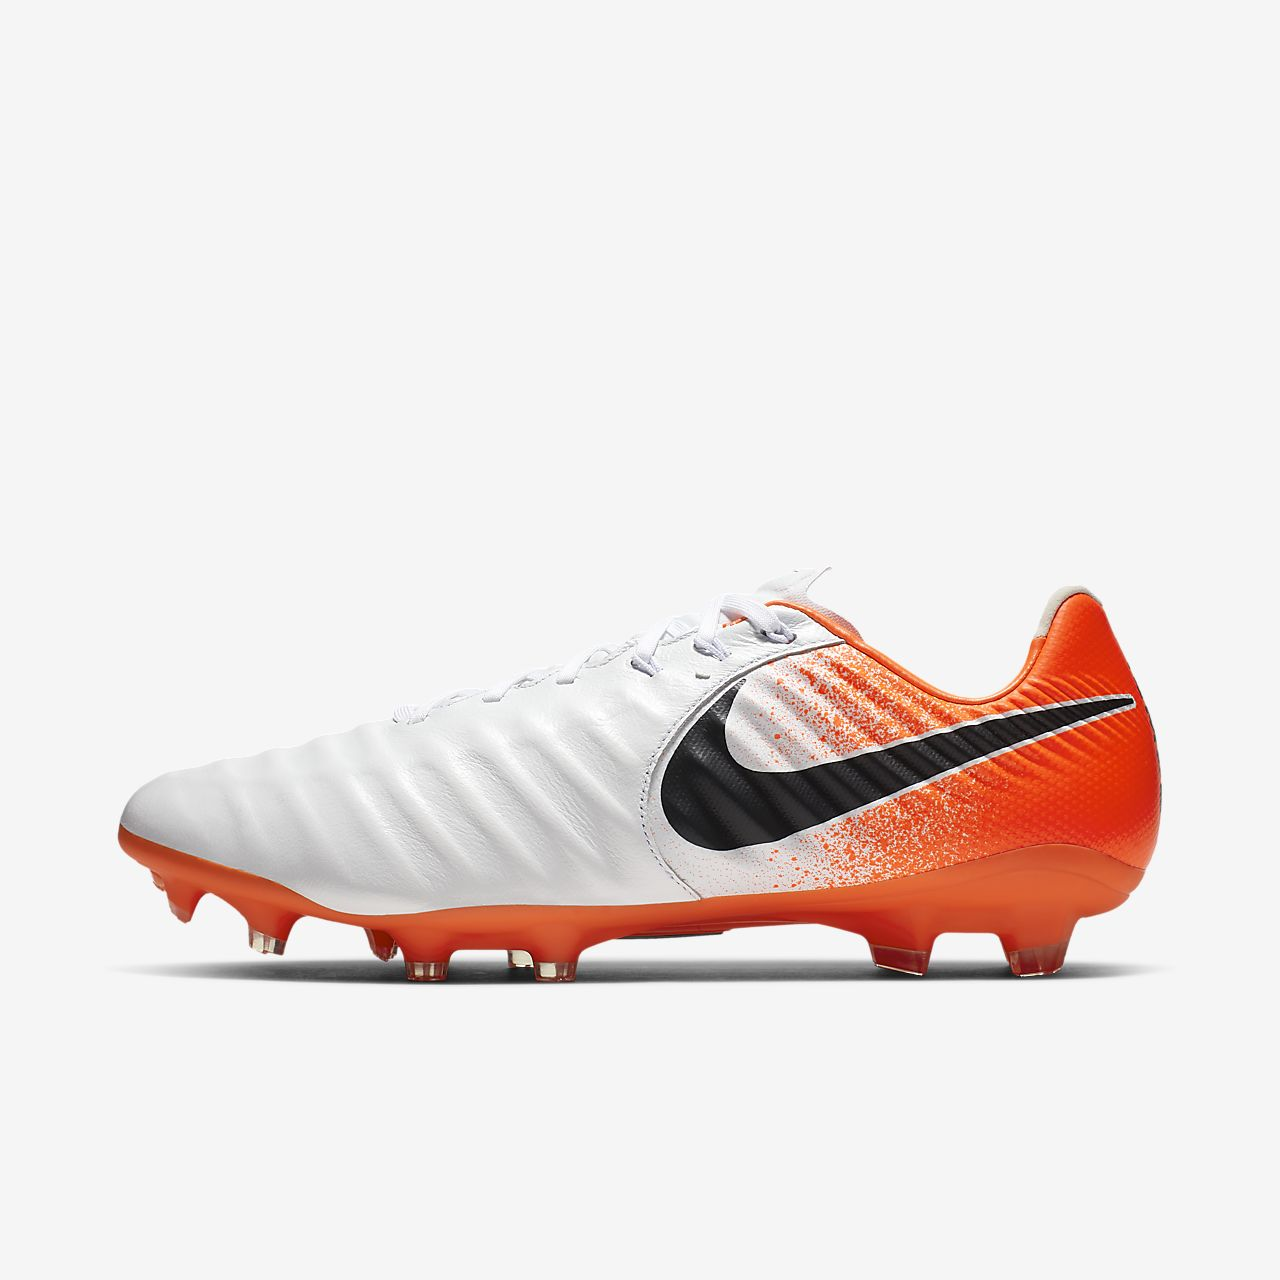 a0a86de57a8 Nike Legend 7 Pro FG Firm-Ground Soccer Cleat. Nike.com